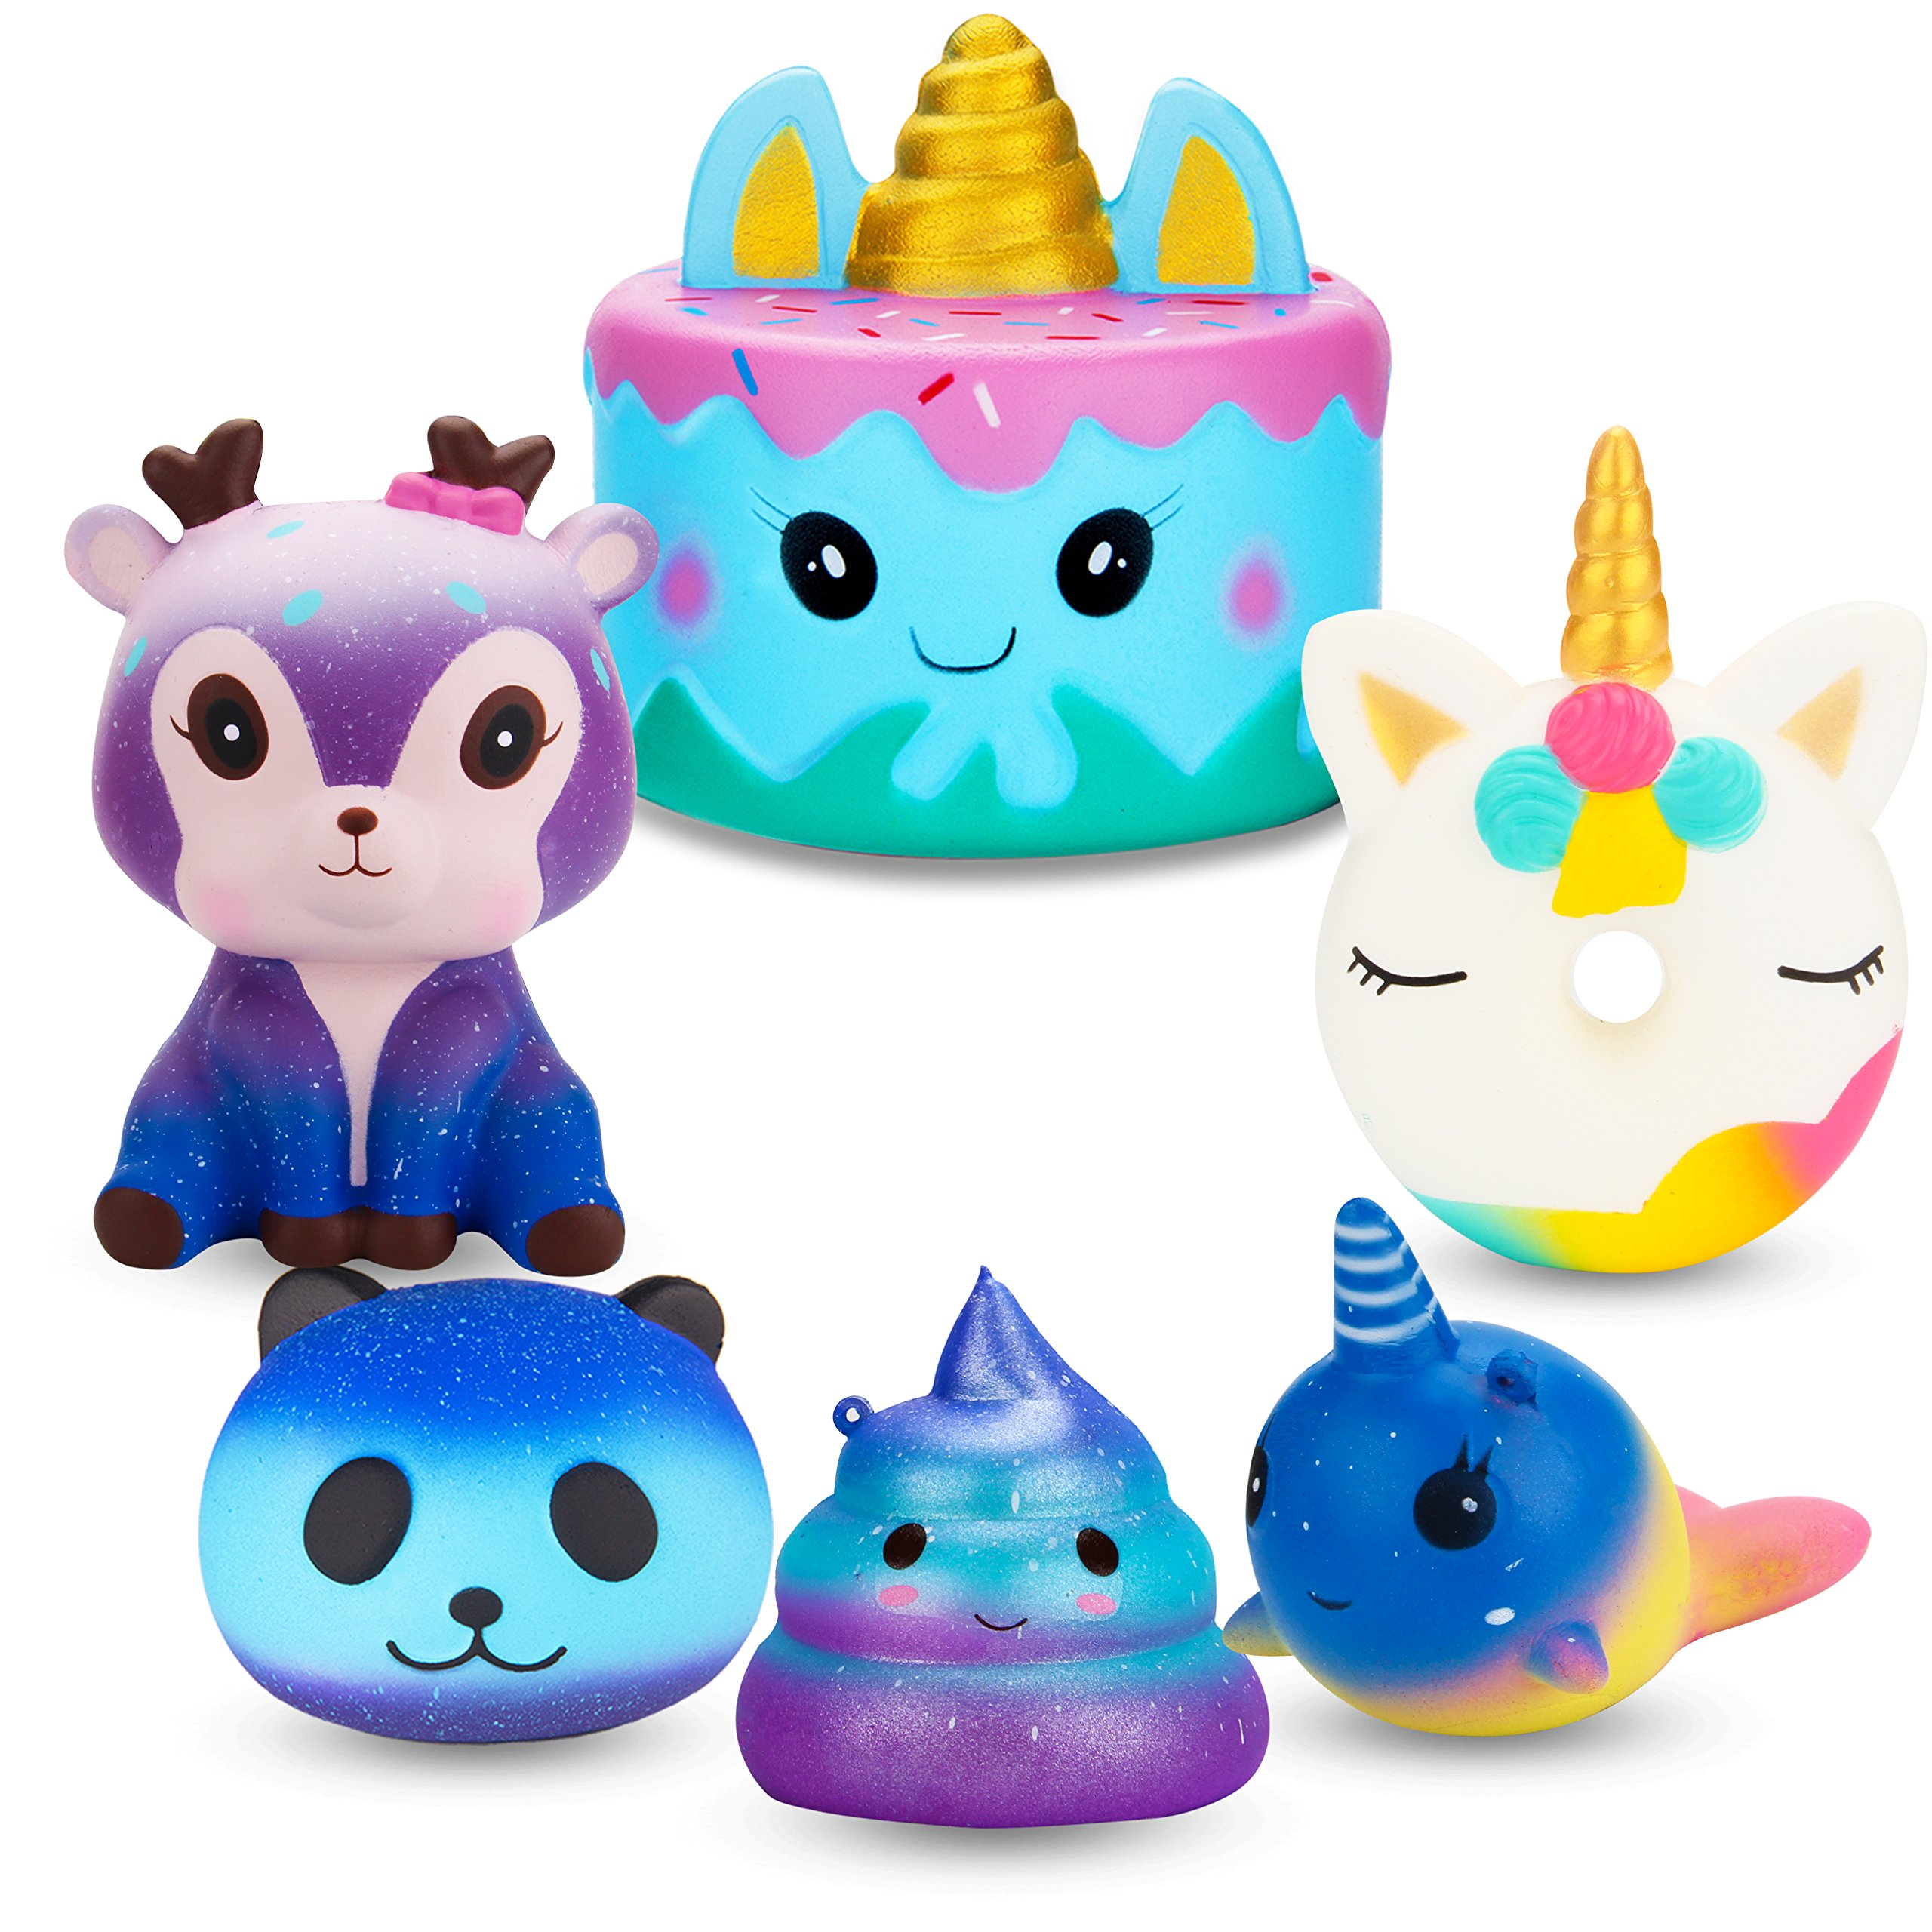 R HORSE Jumbo Cute Narwhal Cake, Unicorn Donut, Galaxy Panda, Deer, Dolphin, Excrement Set Kawaii Cream Scented Squishies Slow Rising Decompression Squeeze Toys for Kids or Stress Relief Toy (6 Pack)